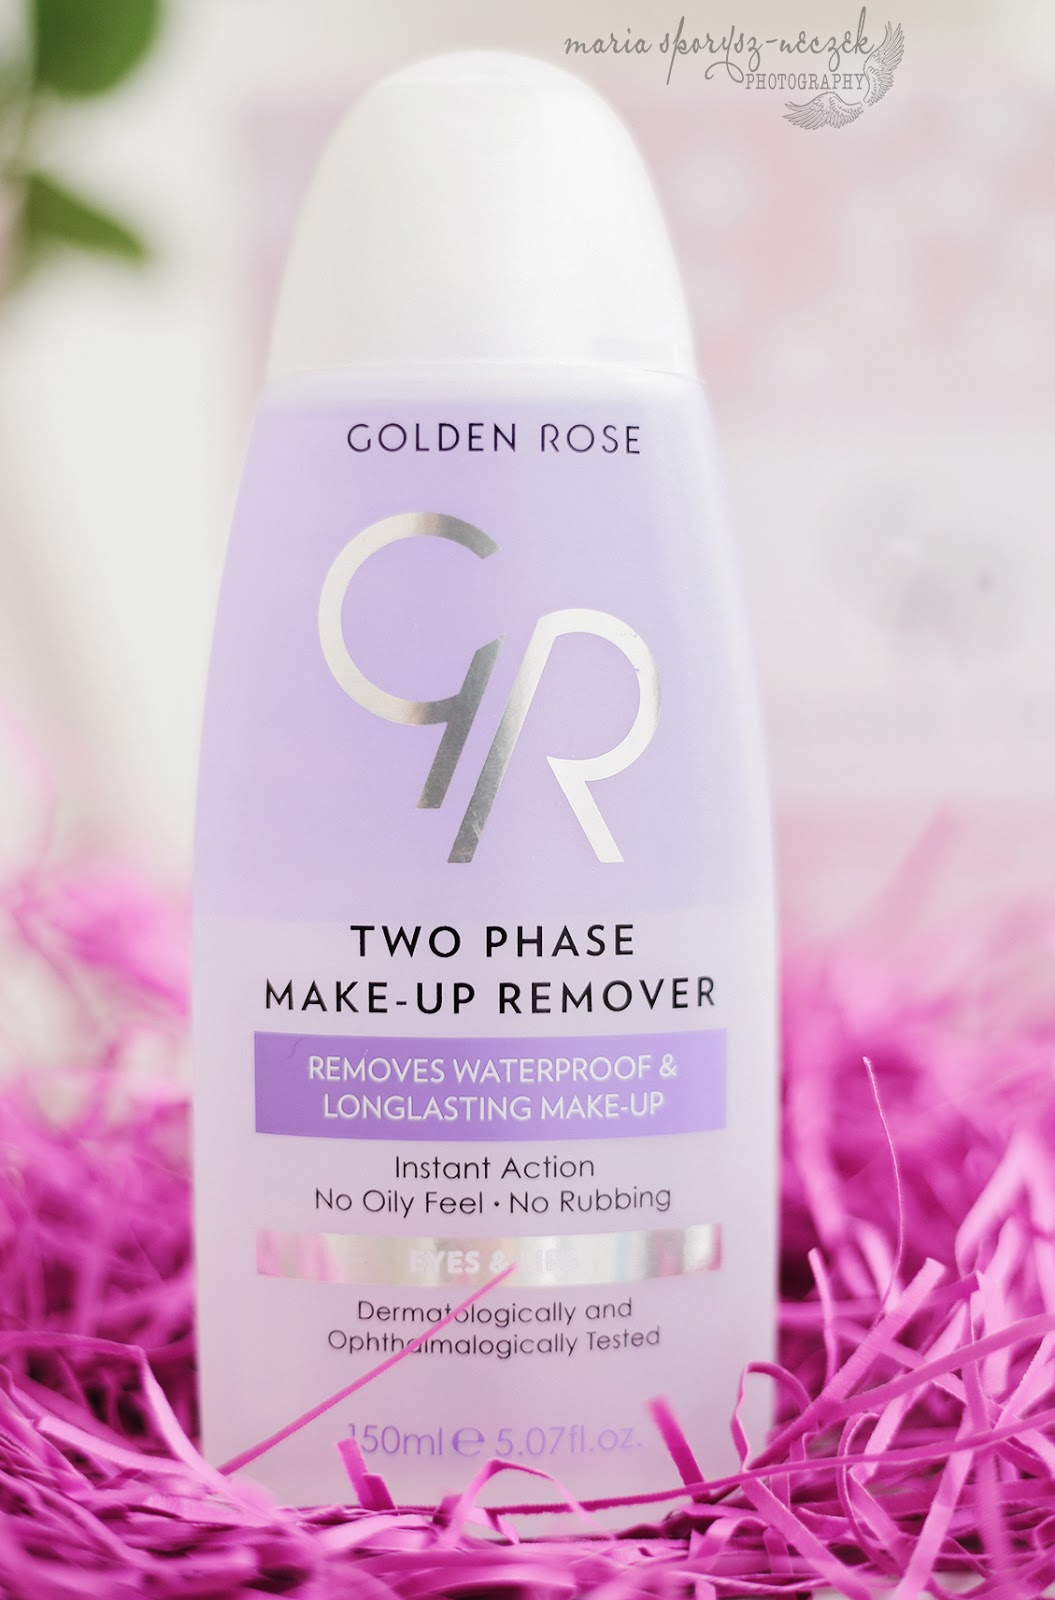 wo Phase Make-Up Remover